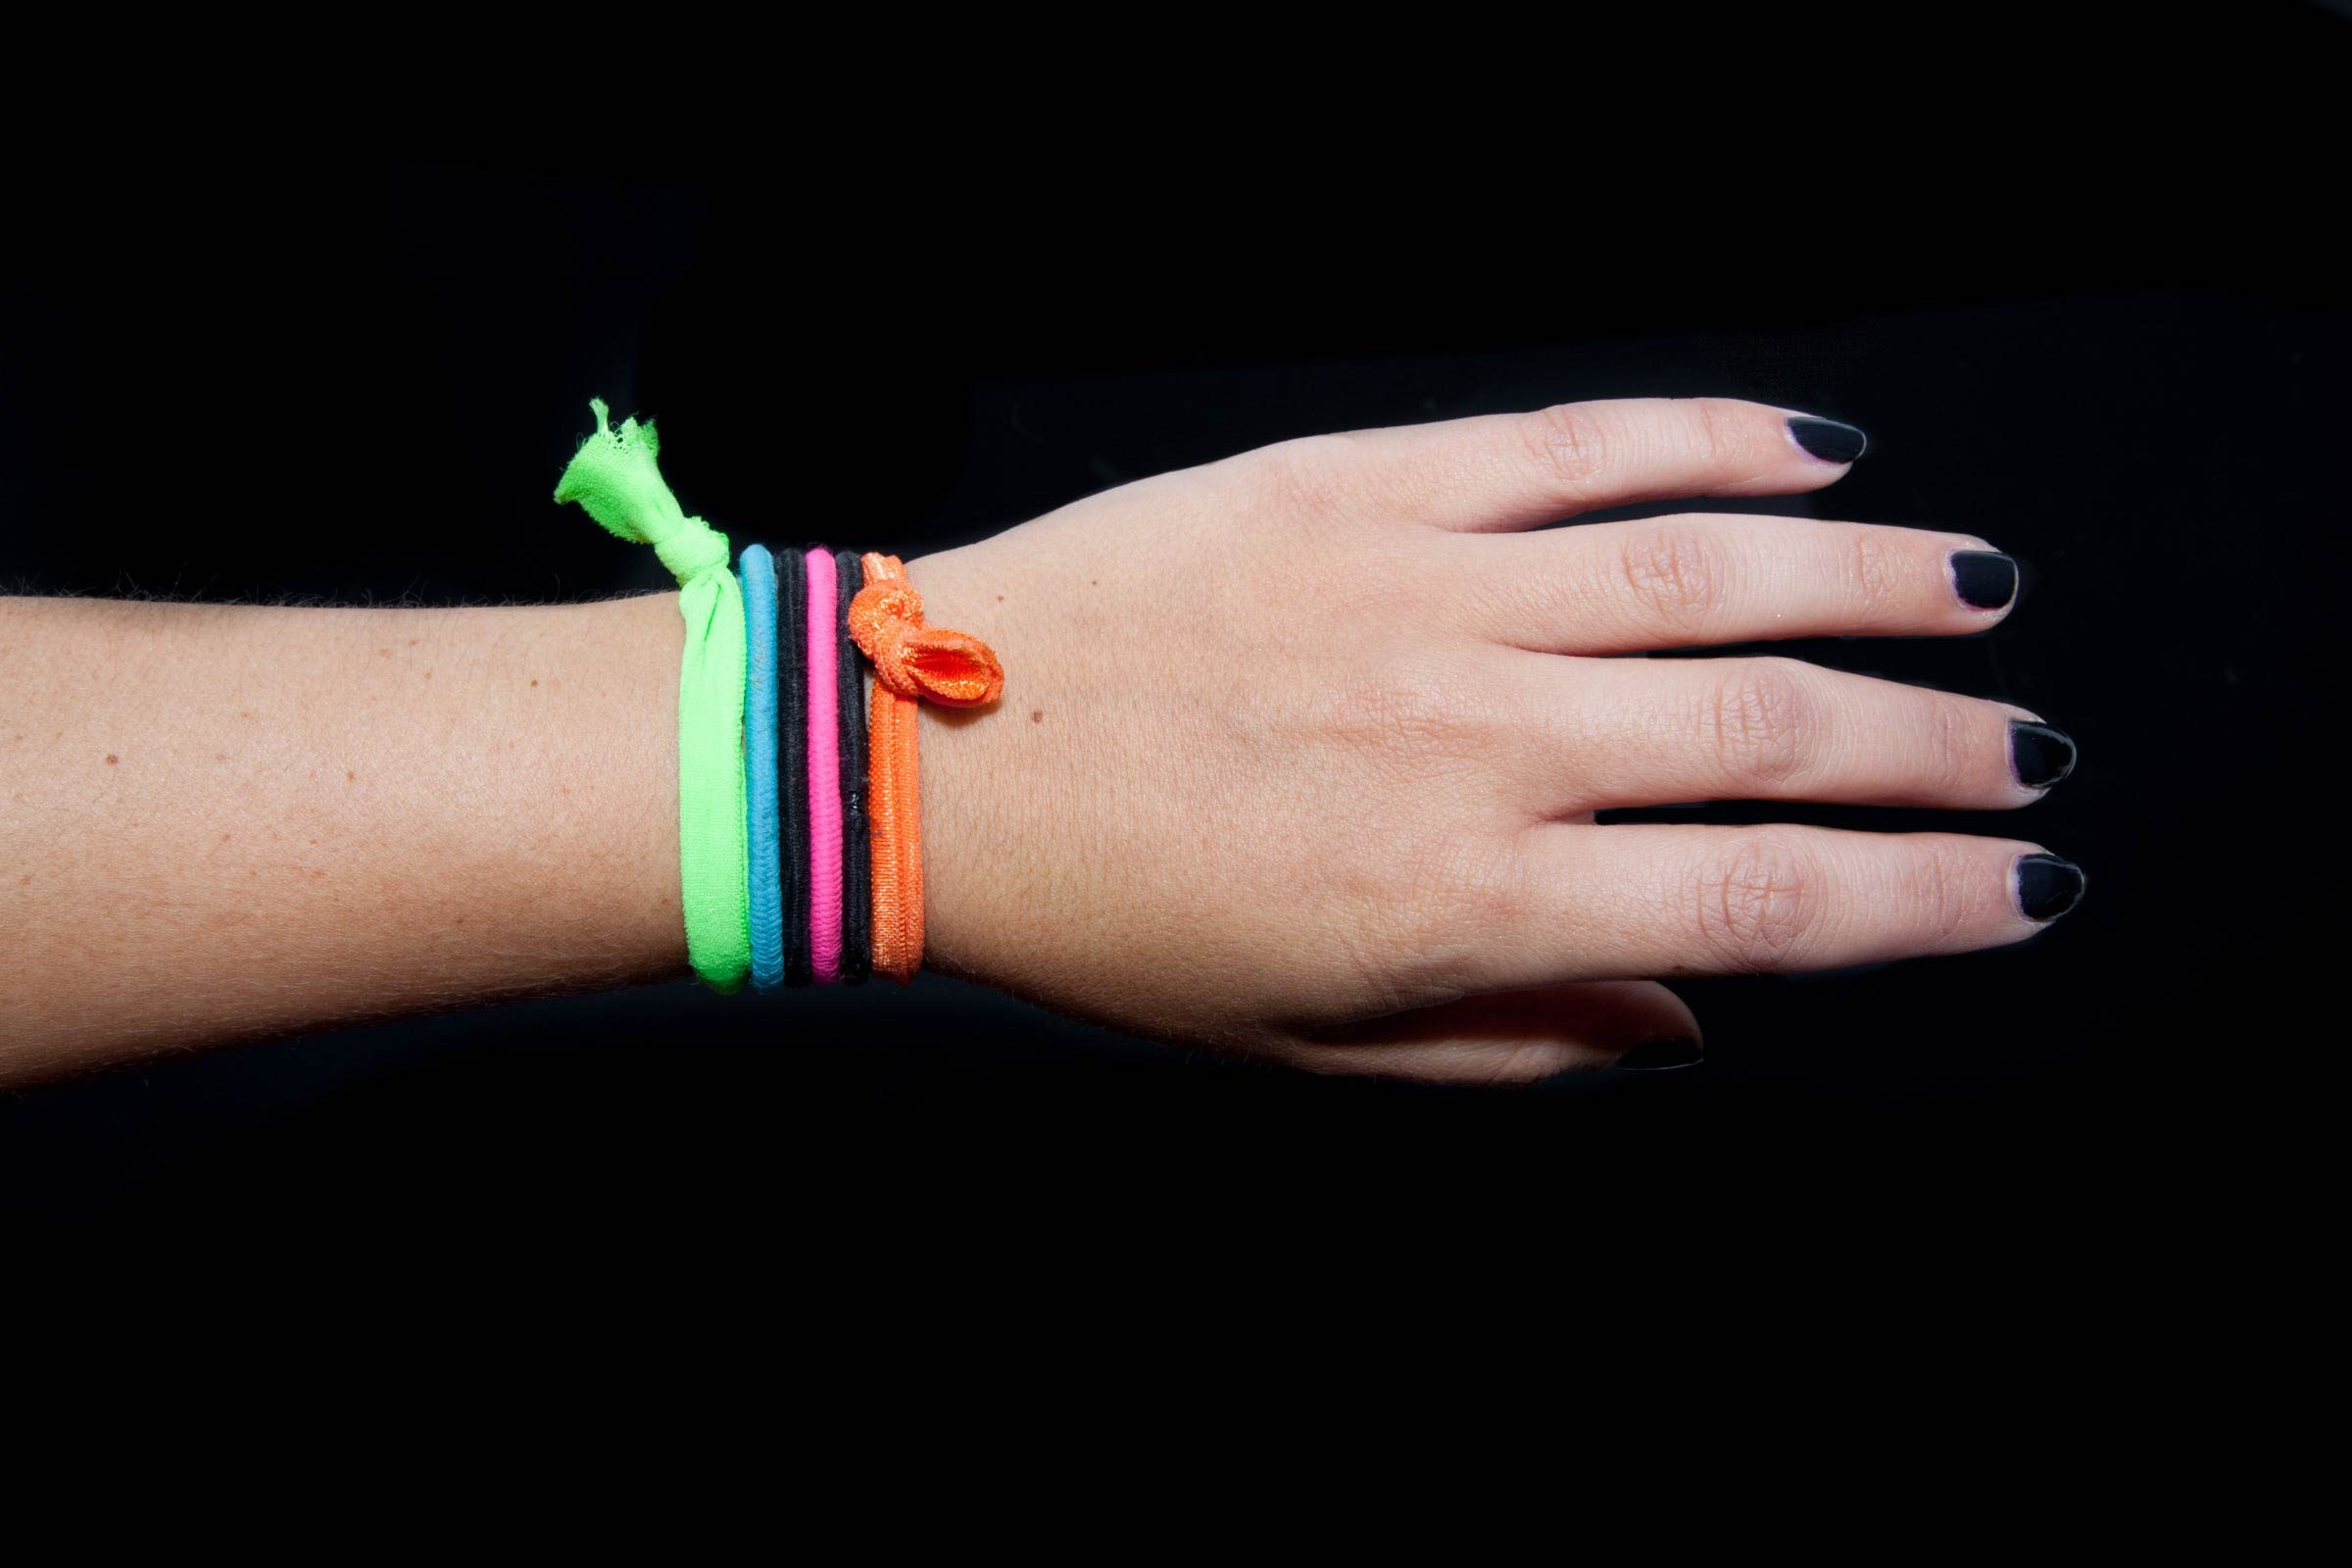 How a Hair Tie on Your Wrist Could Cause Infection  The Healthy